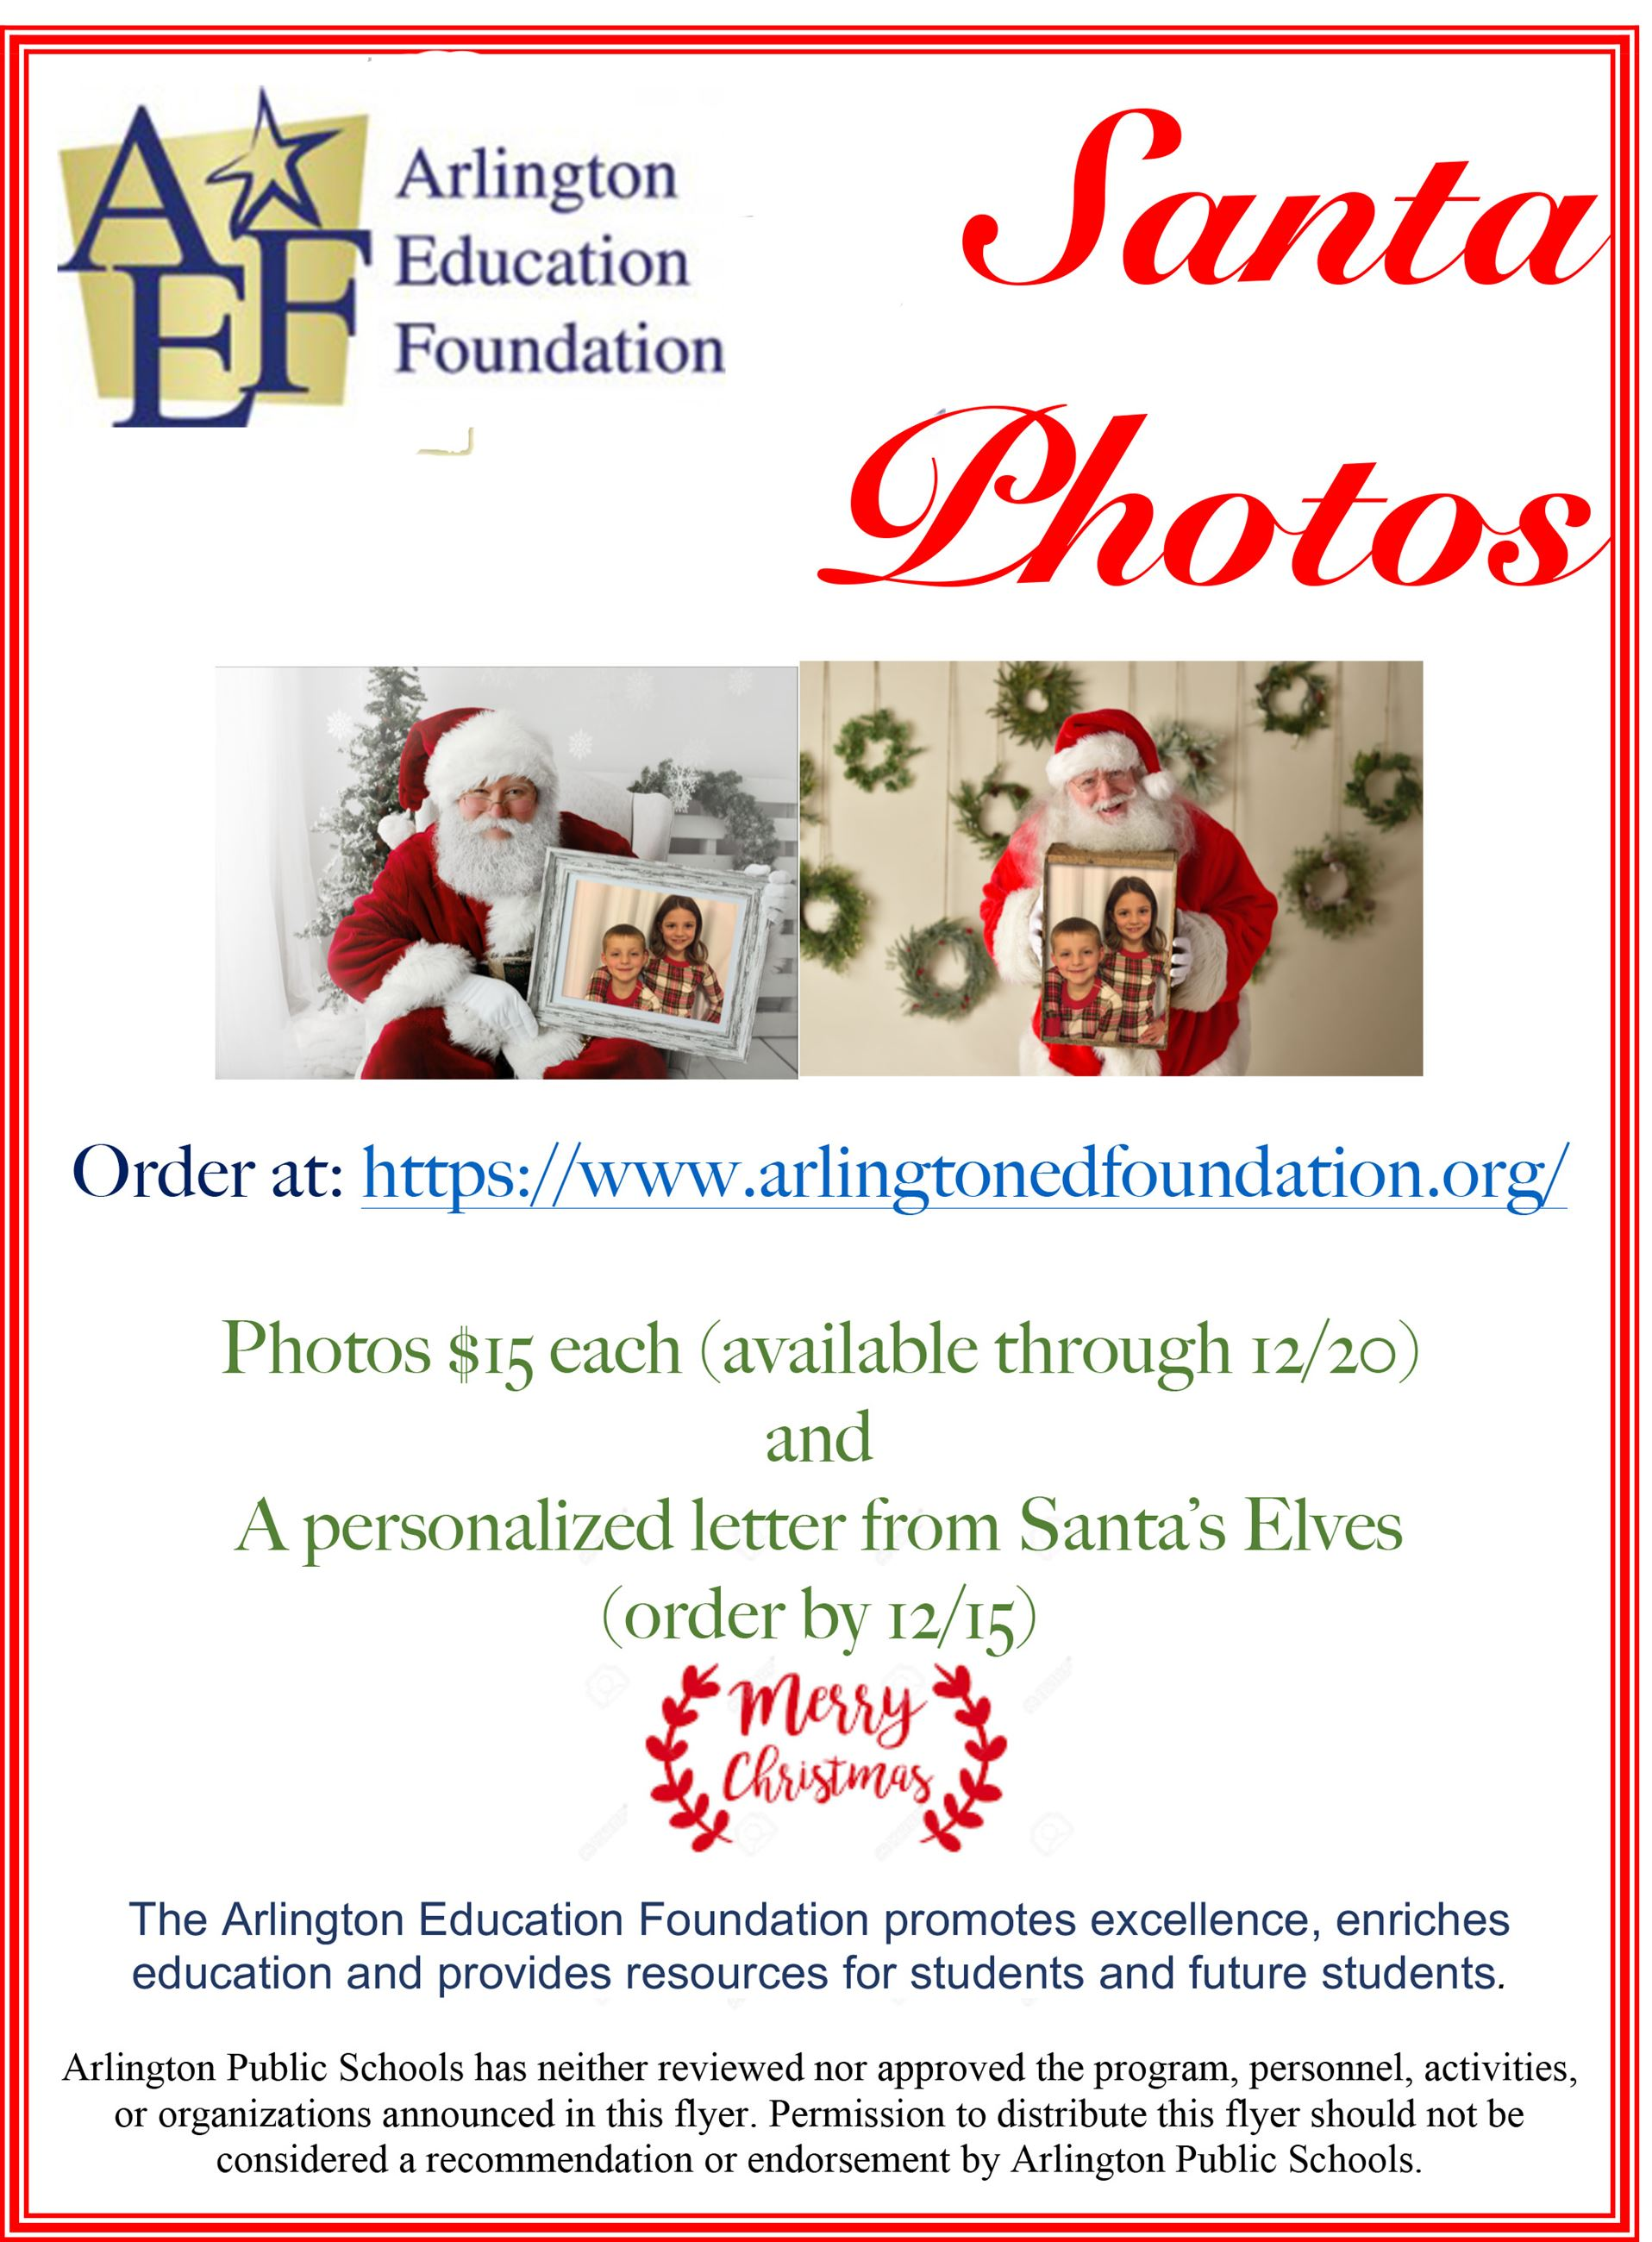 AEF Santa Photo Flyer 2020 Final